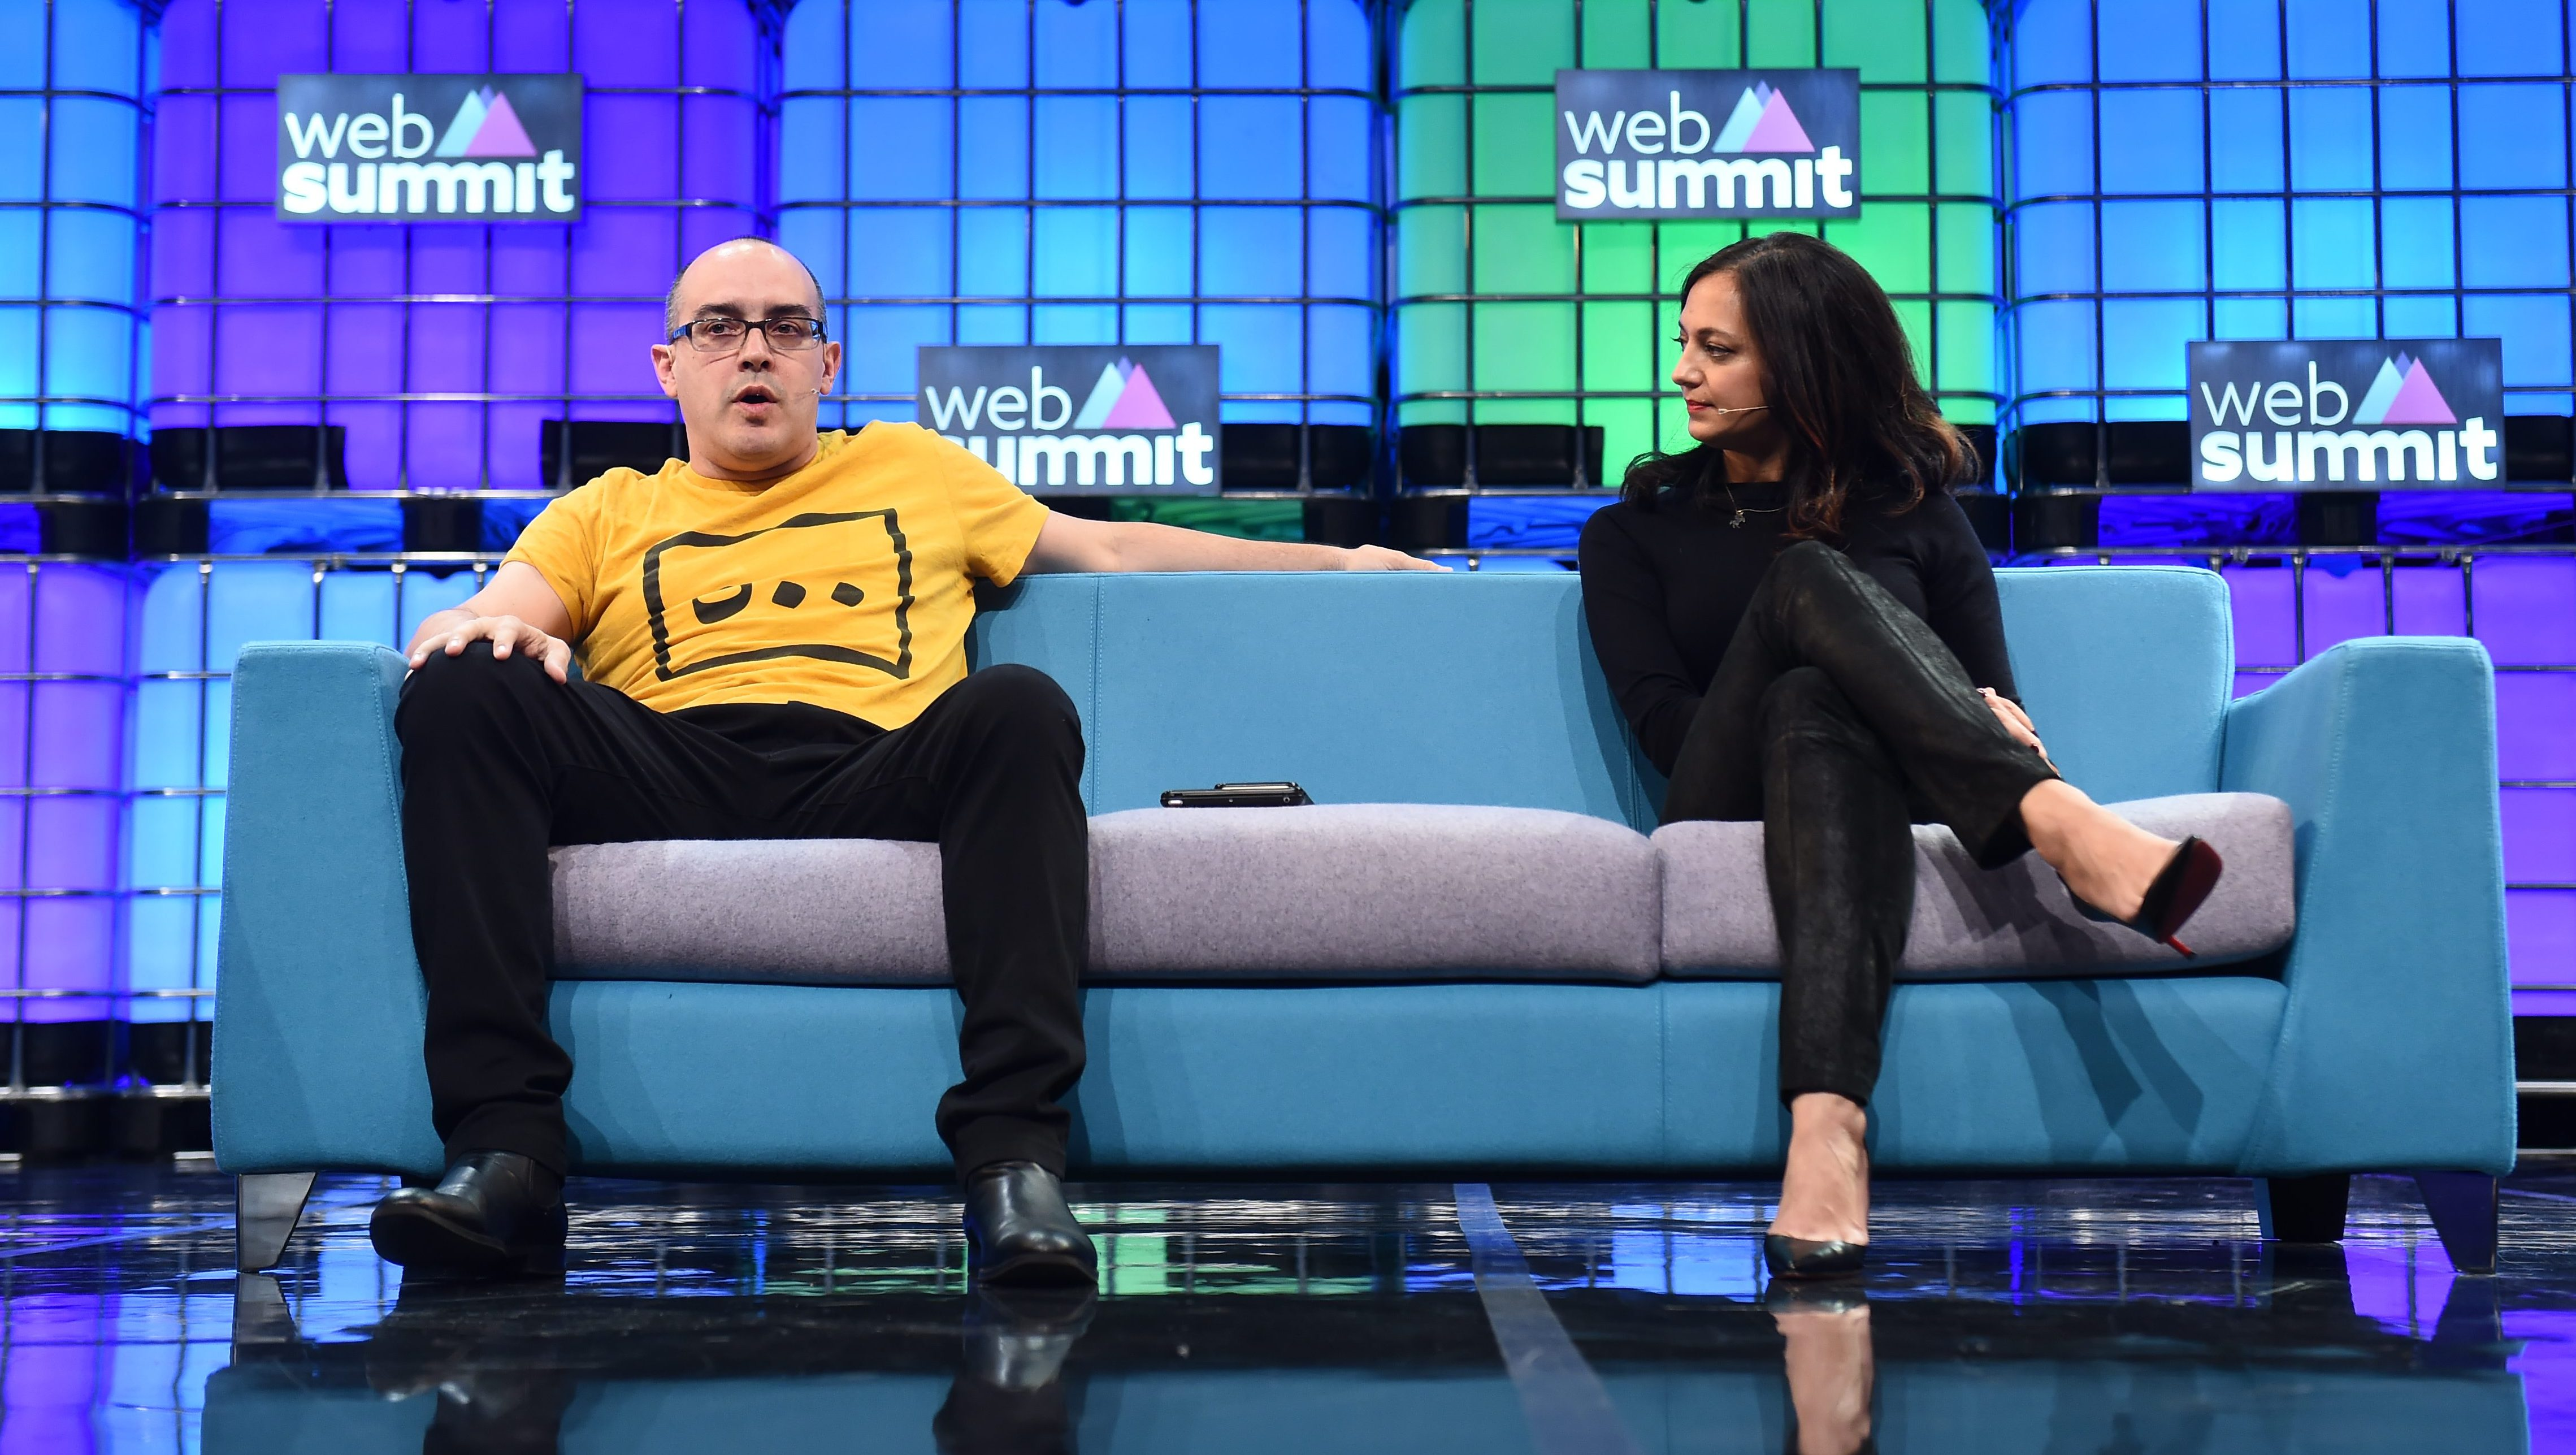 4 November 2015; Dave McClure, Founder, 500 Startups, and Jalak Jobanputra, Founding Partner, FuturePerfect Ventures, on the Centre Stage during Day 2 of the 2015 Web Summit in the RDS, Dublin, Ireland. Picture credit: Stephen McCarthy / SPORTSFILE / Web Summit